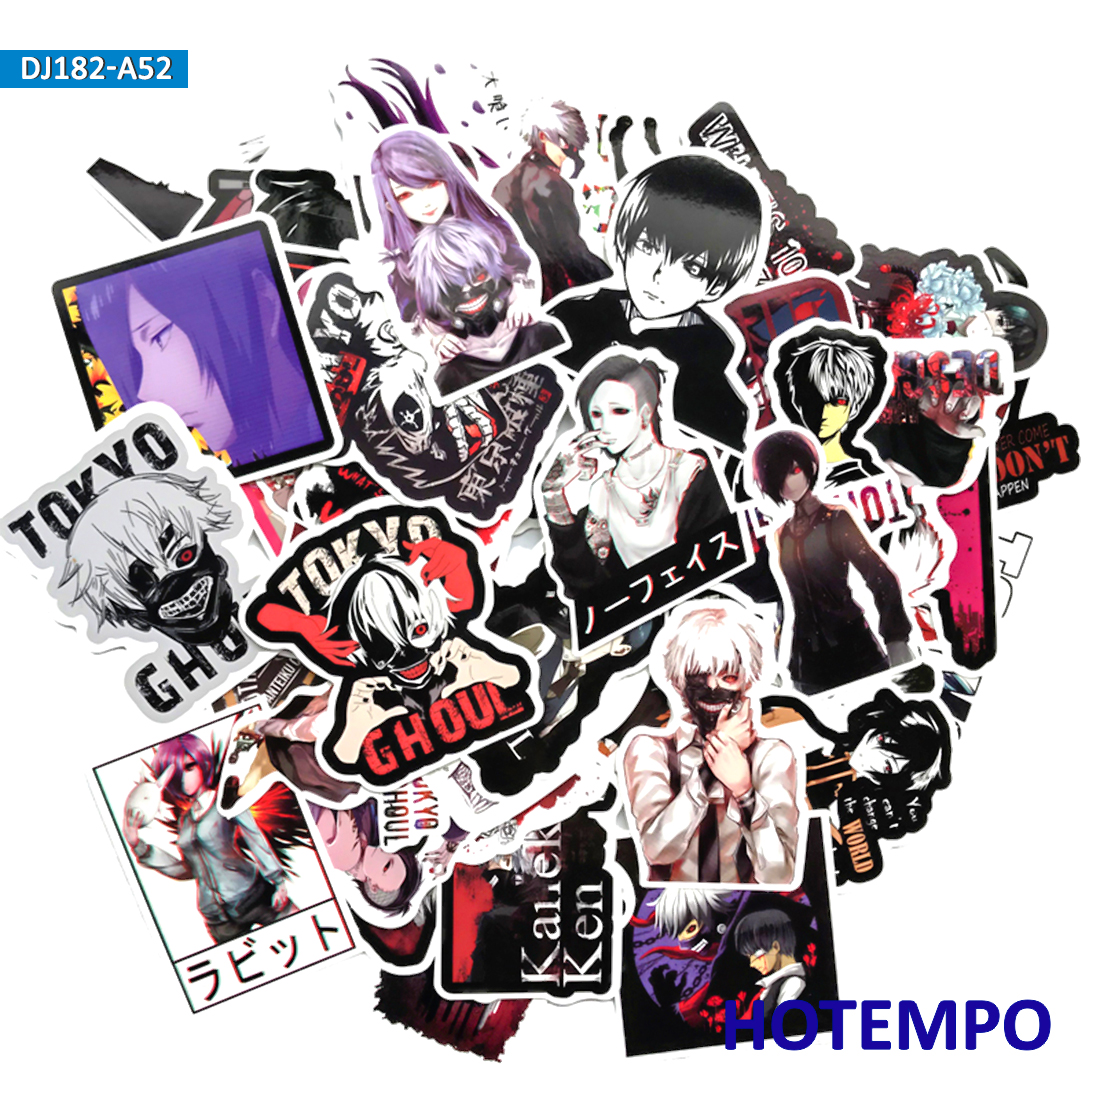 50pcs Japanese Manga Tokyo Ghoul Stickers For Mobile Phone Laptop Luggage Guitar Case Skateboard Fixed Gear Bike Car Stickers